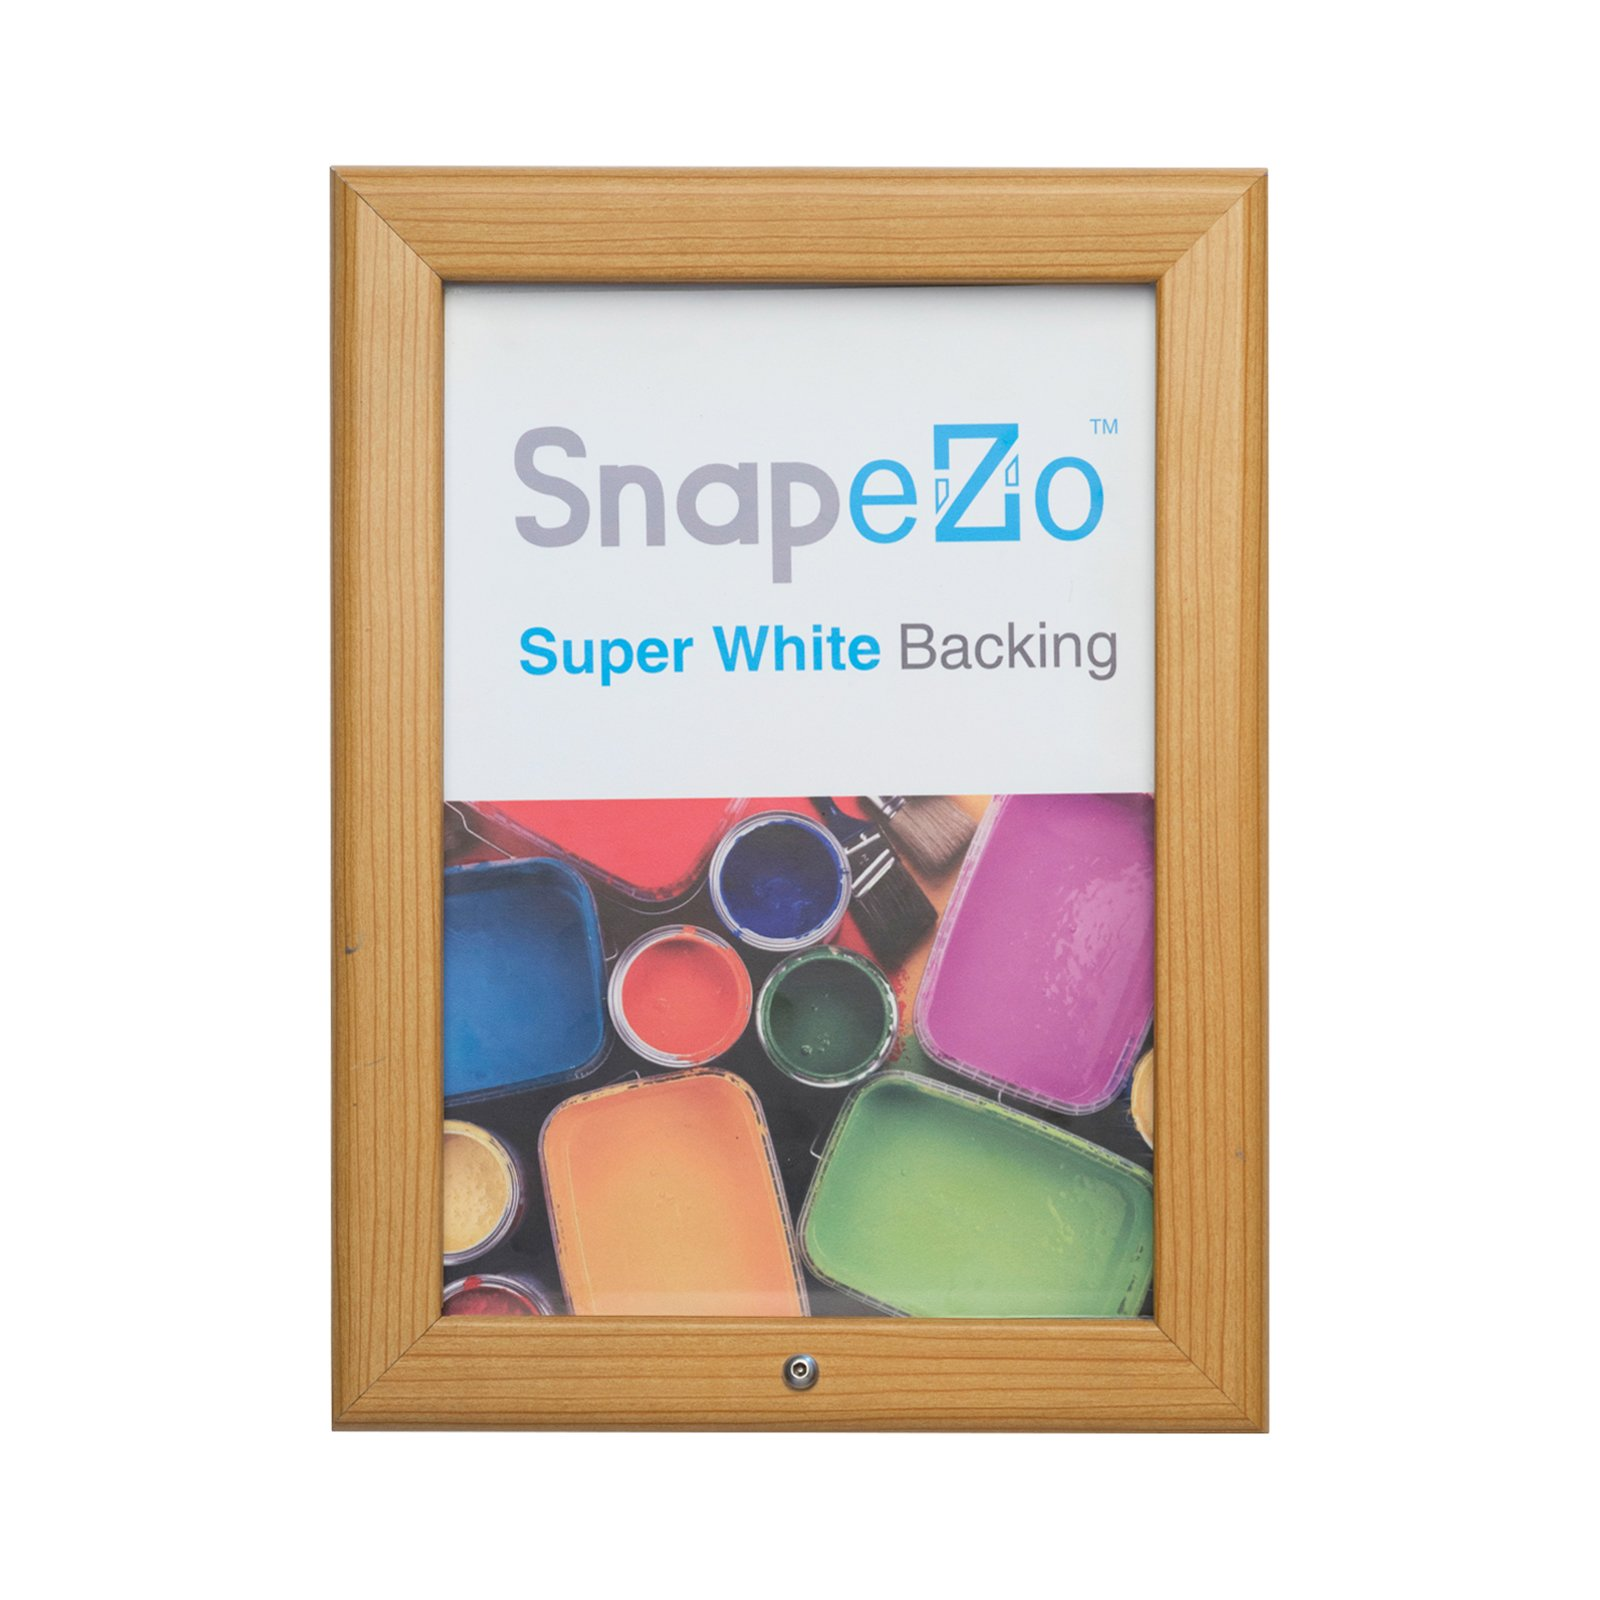 SnapeZo Locking Diploma Frame 8.5x11 Inches, Light Wood Effect 1.25'' Aluminum Profile, Lockable Front-Loading Snap Frame, Wall Mounting, Professional Series